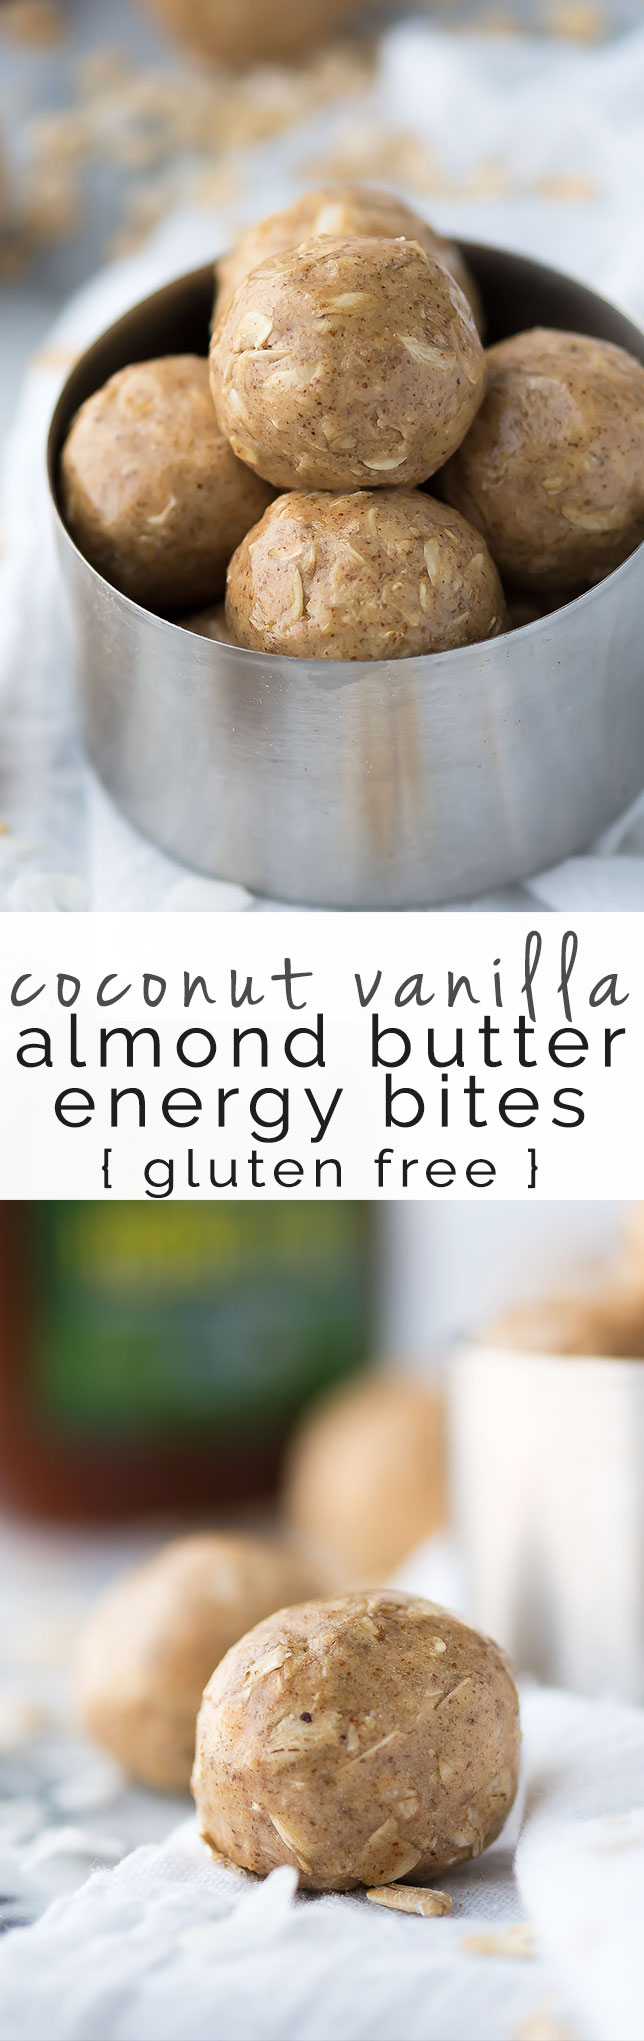 Coconut Vanilla Almond Butter Energy Bites require only 5 ingredients and only a few minutes of your time to have a sweet, salty and a wholesome snack!